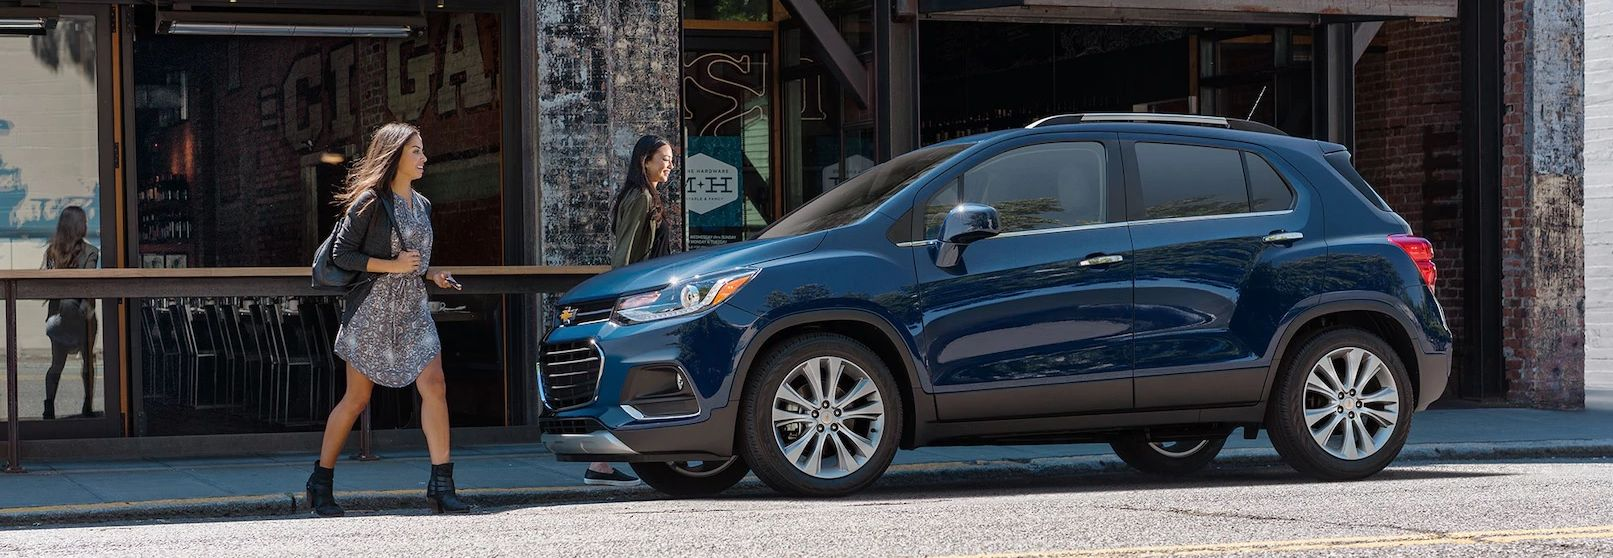 2018 chevrolet trax for sale in chicago il kingdom chevy. Black Bedroom Furniture Sets. Home Design Ideas